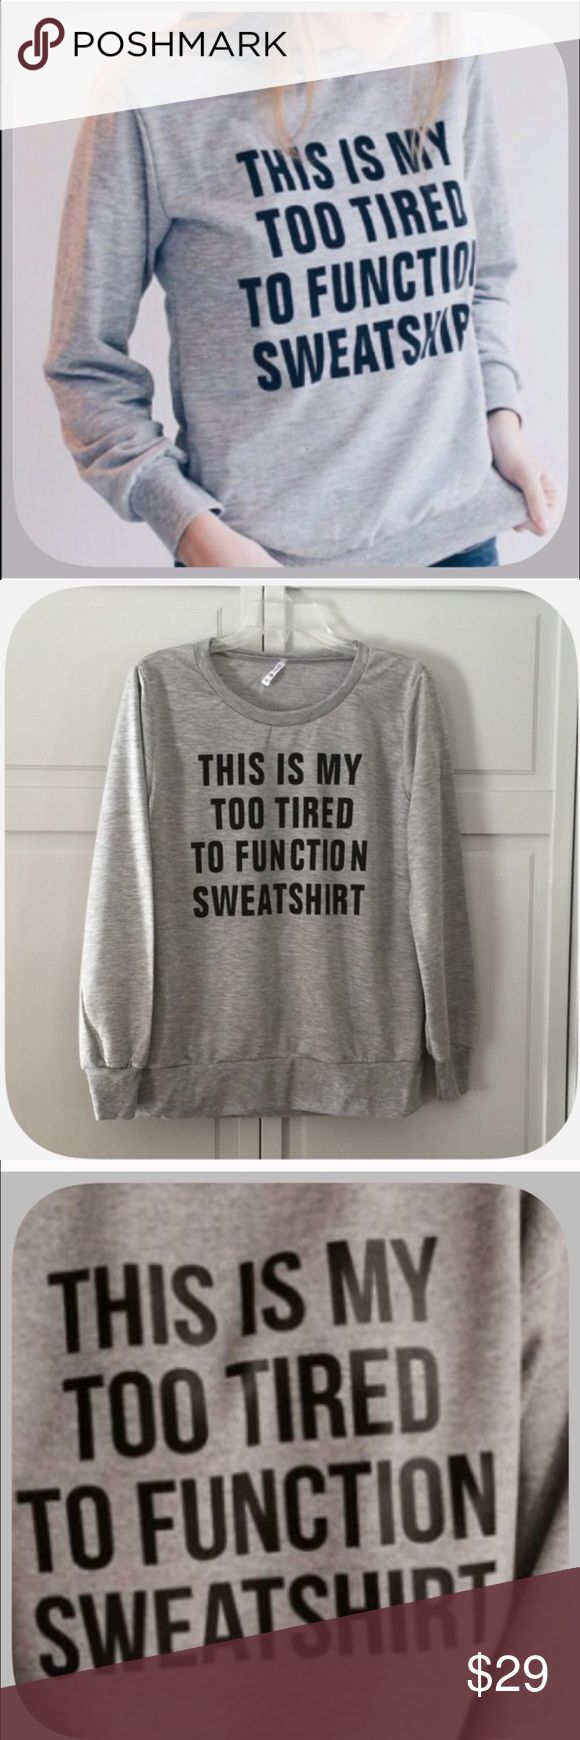 "NWT Cute Gray/Black "" My Too Tired Sweatshirt"" Ladies this top is for all of us! We can all relate in one way or the other! Size Large/Xlarge! This runs small! Boutique Tops Sweatshirts & Hoodies"